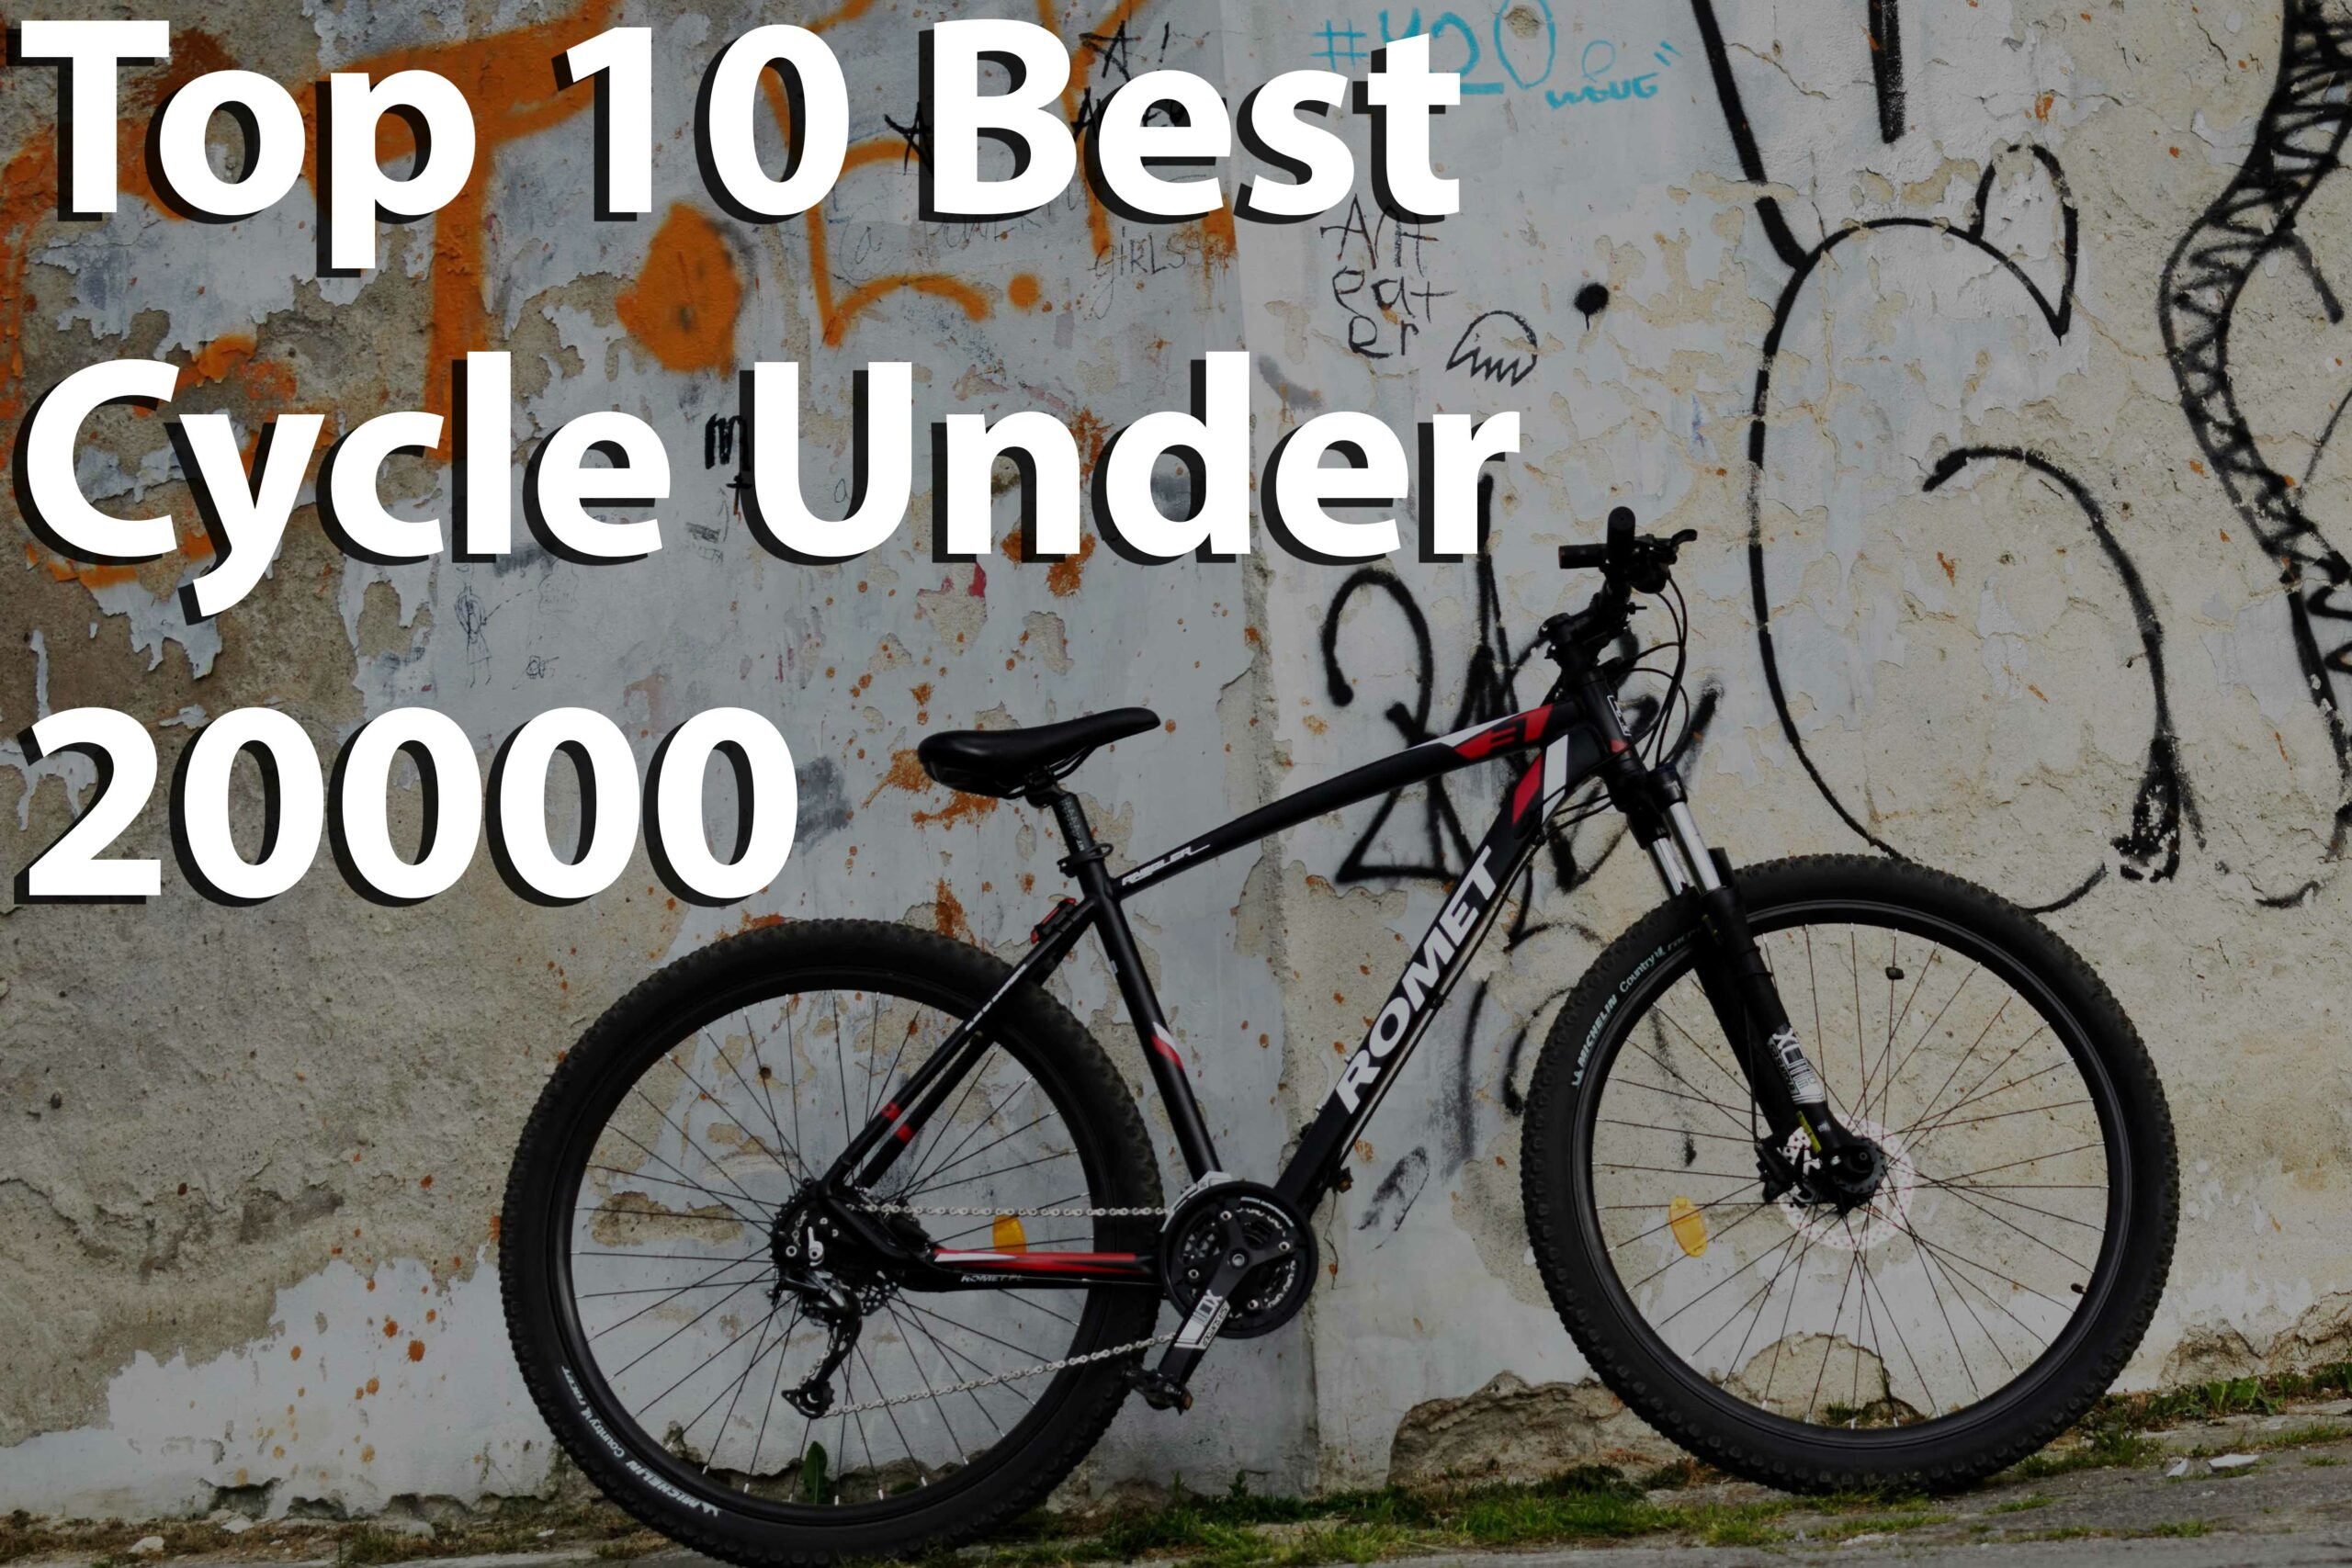 Best cycle under 20000